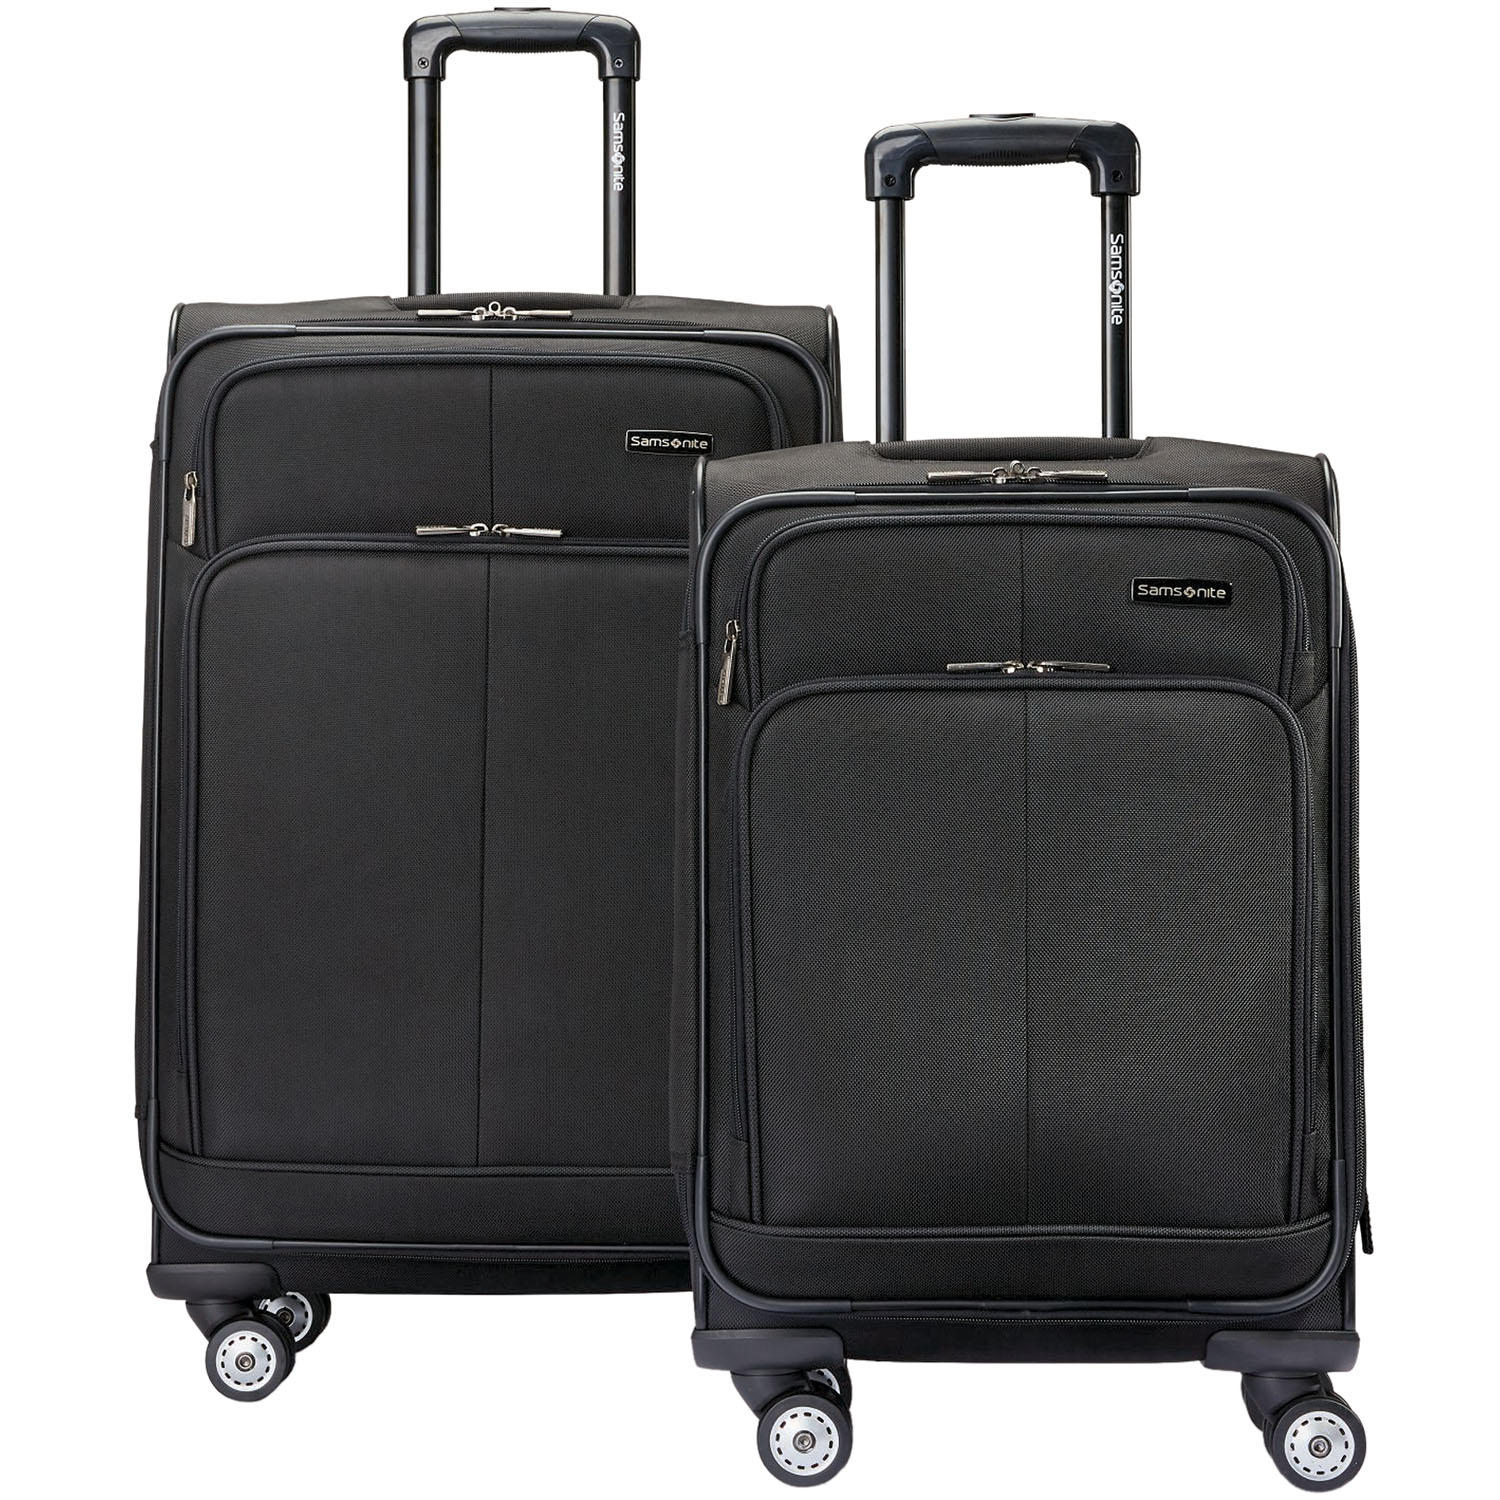 Samsonite Versatility 2-Piece Luggage Set (Black Or Blue)